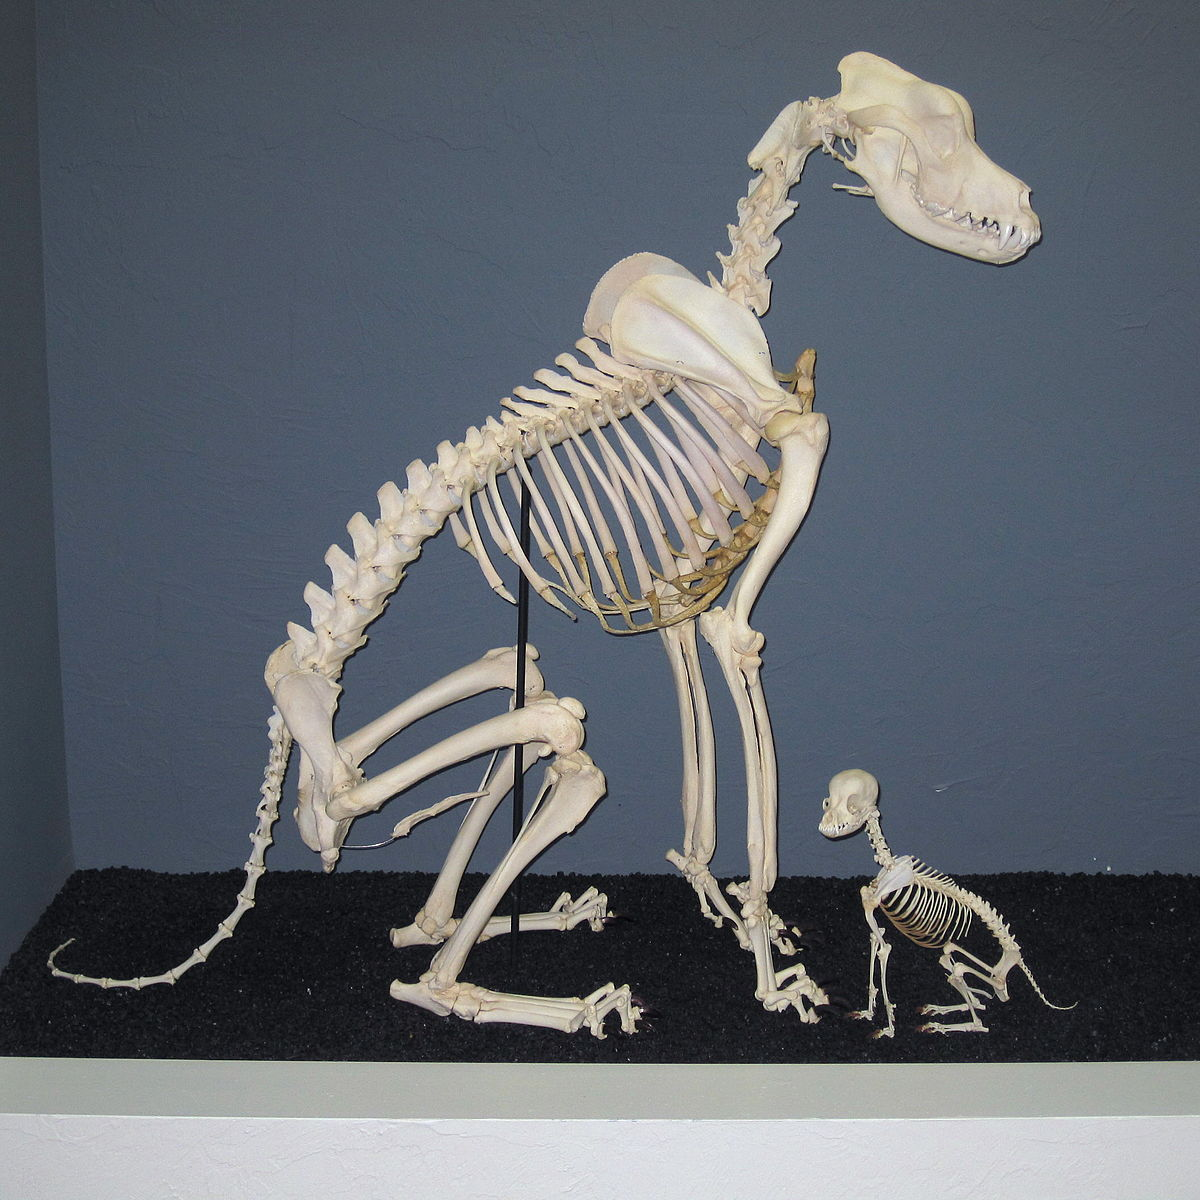 Maceration Bone Wikipedia Gallery Images And Information Snake Skeleton Diagram